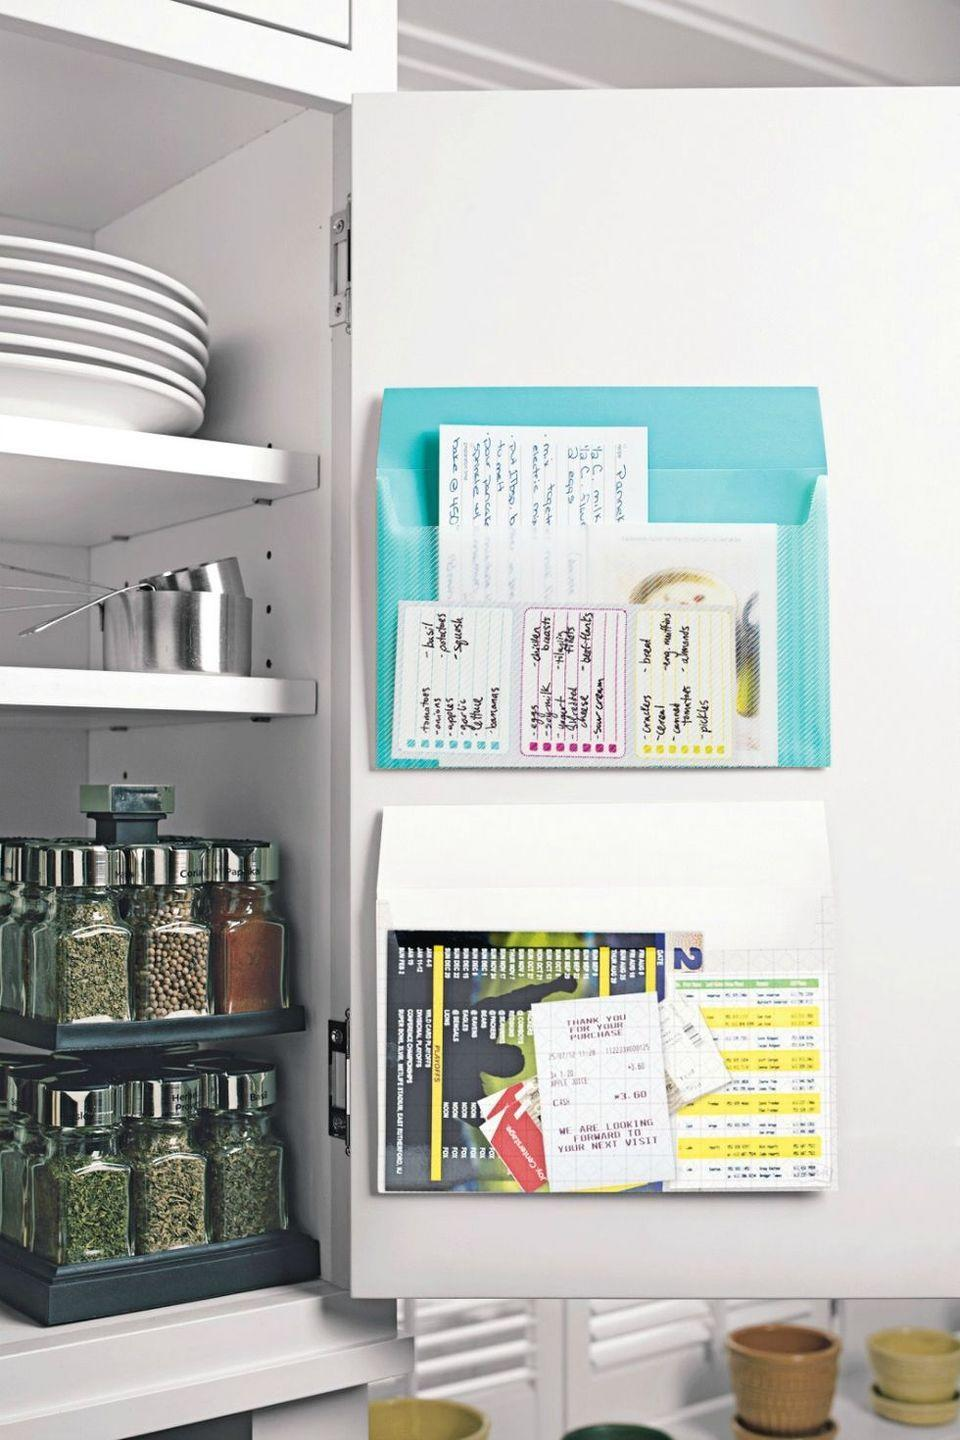 <p>Stick adhesive pockets to the inside of your spice cabinet to keep all of your grocery lists, coupons, and recipes in one spot. Add a pen loop, so you don't have to go searching to jot something down. <br></p>